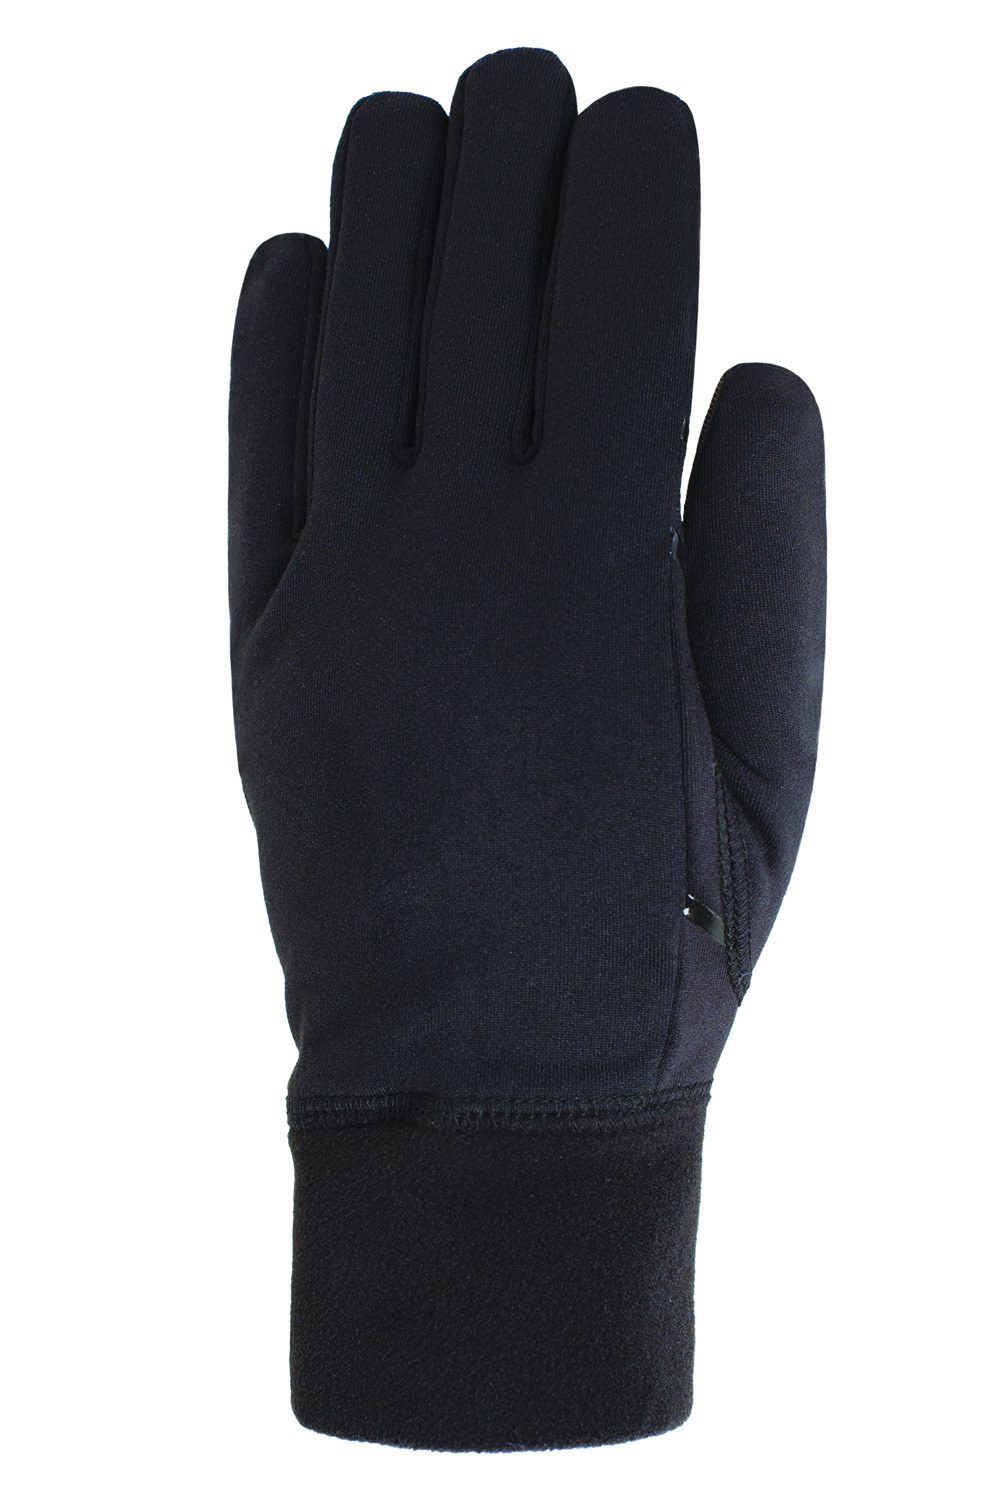 Gants Auclair H J-Walker